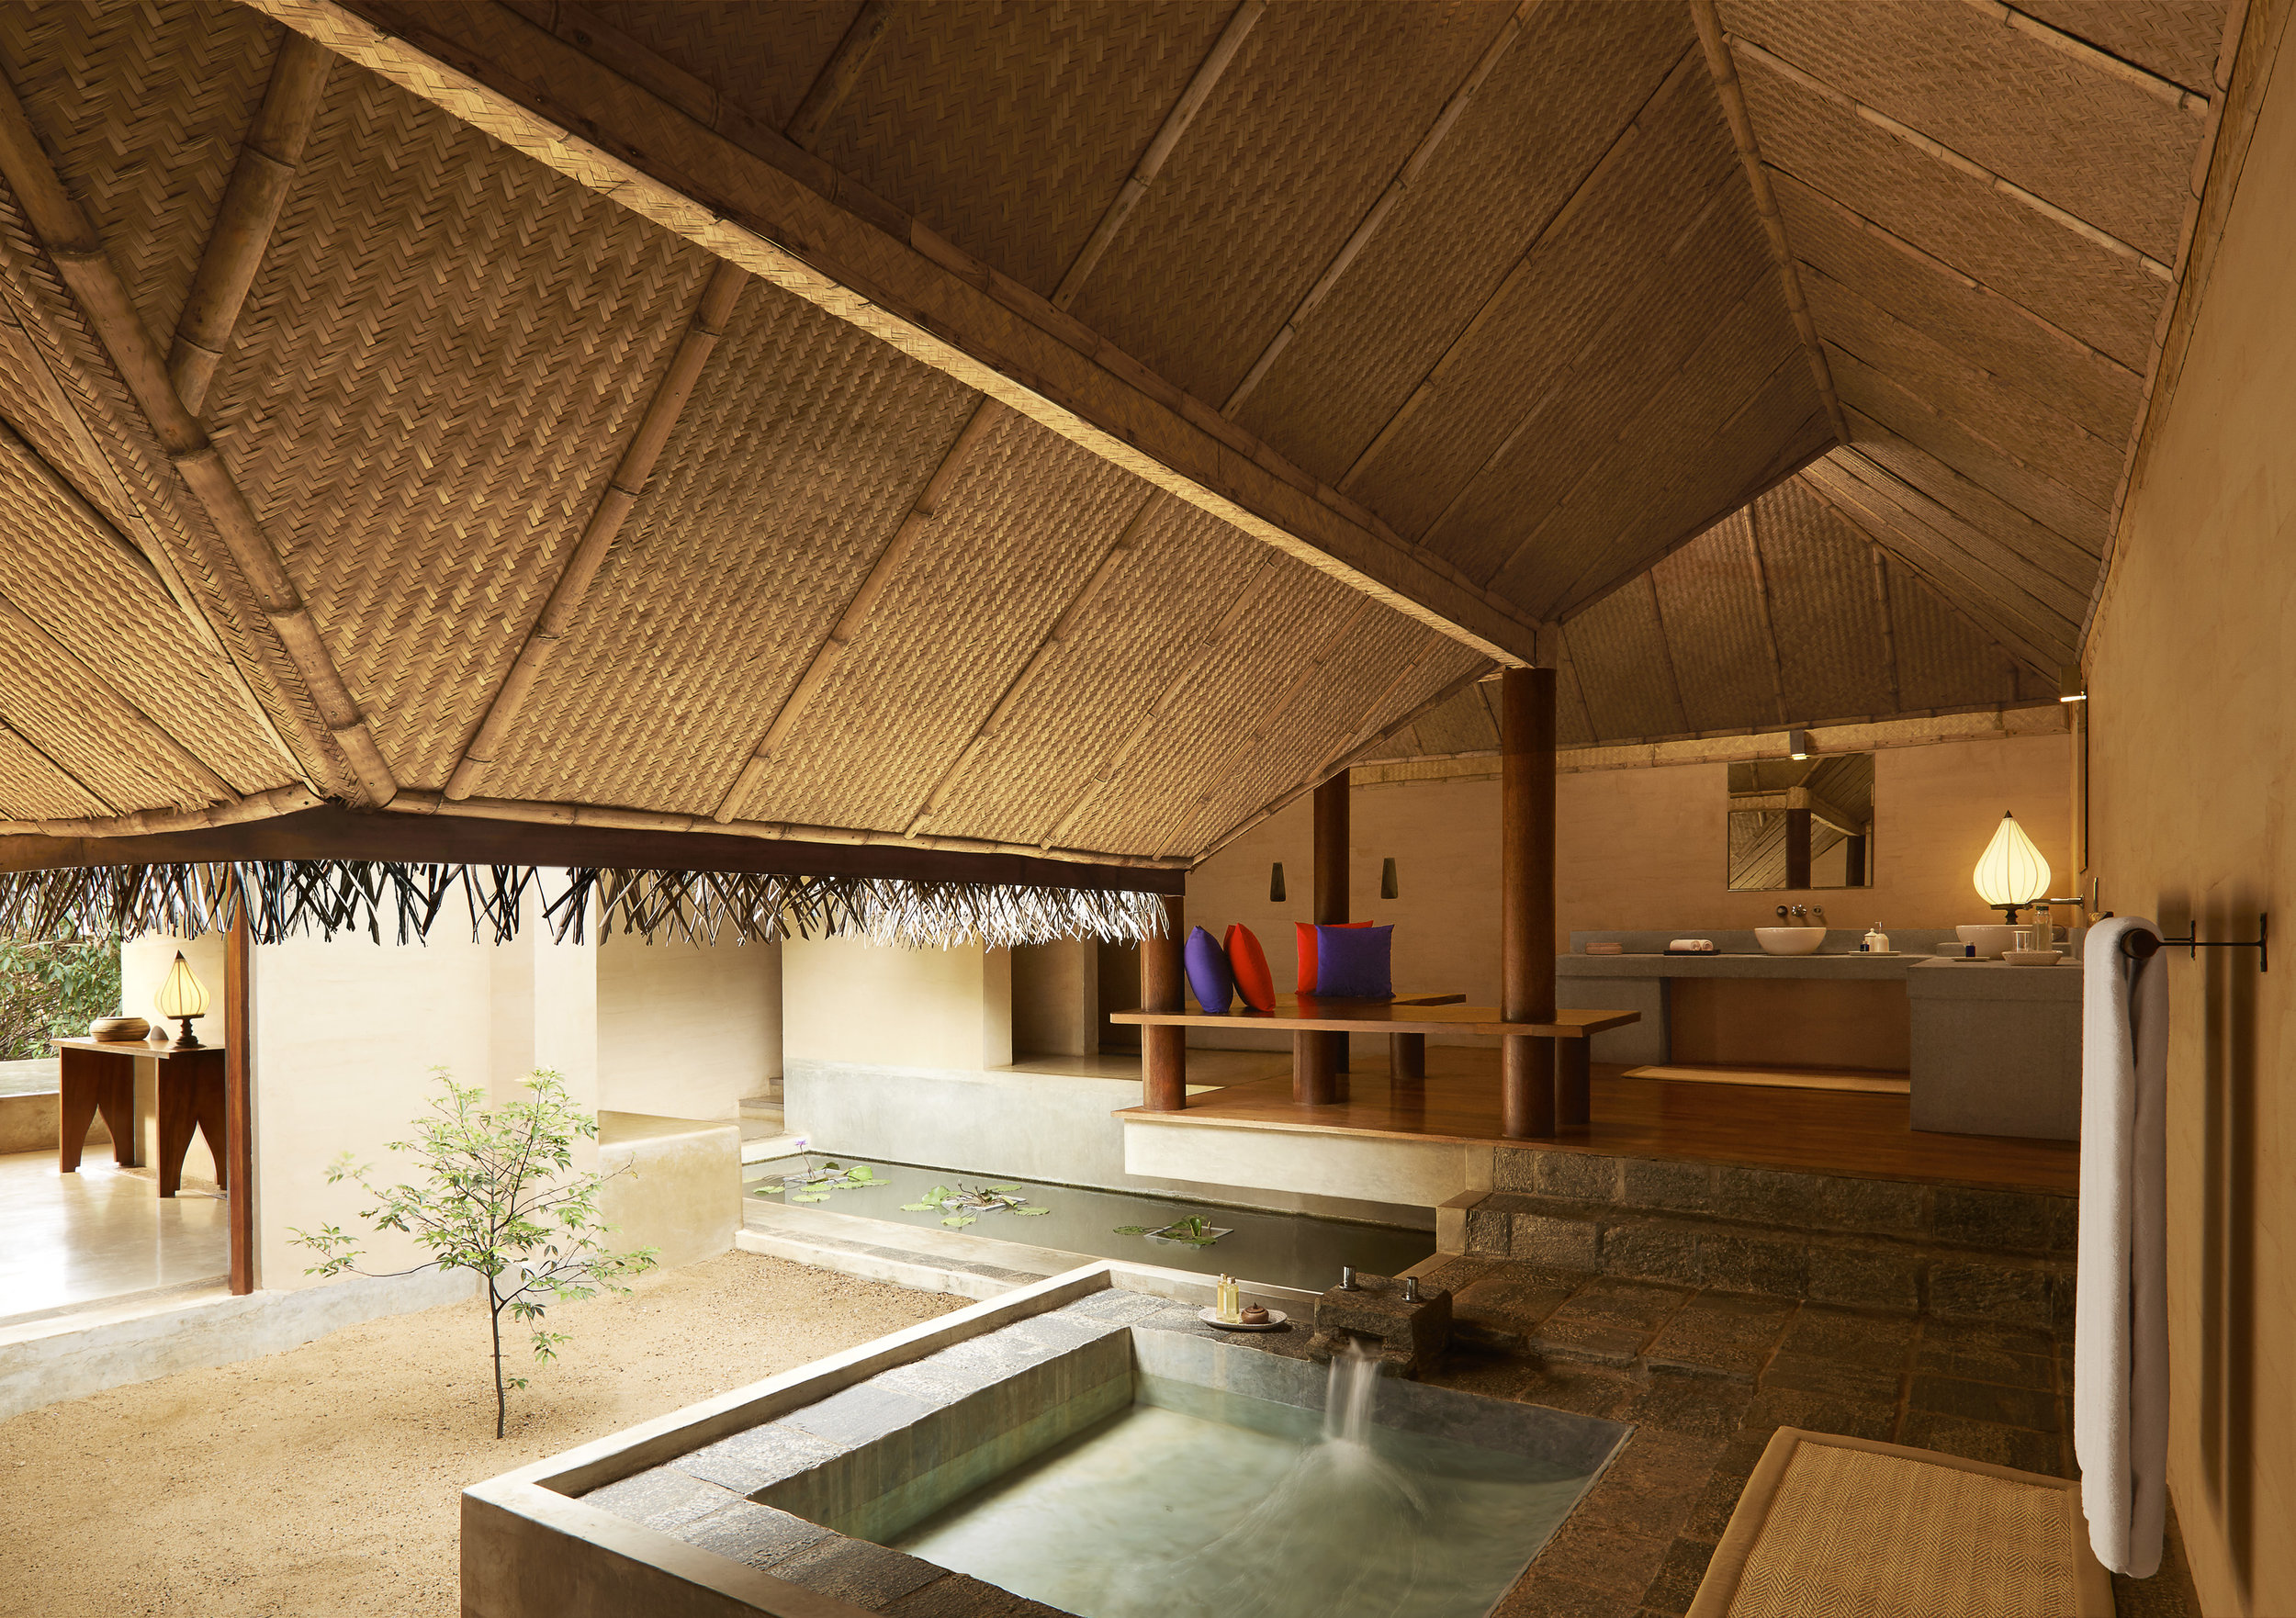 invite-to-paradise-sri-lanka-specialists-experts-travel-agent-tour-operator-jetwing-viluyana-hotel-cultural-triangle-dwelling-Forest-bathroom.jpg